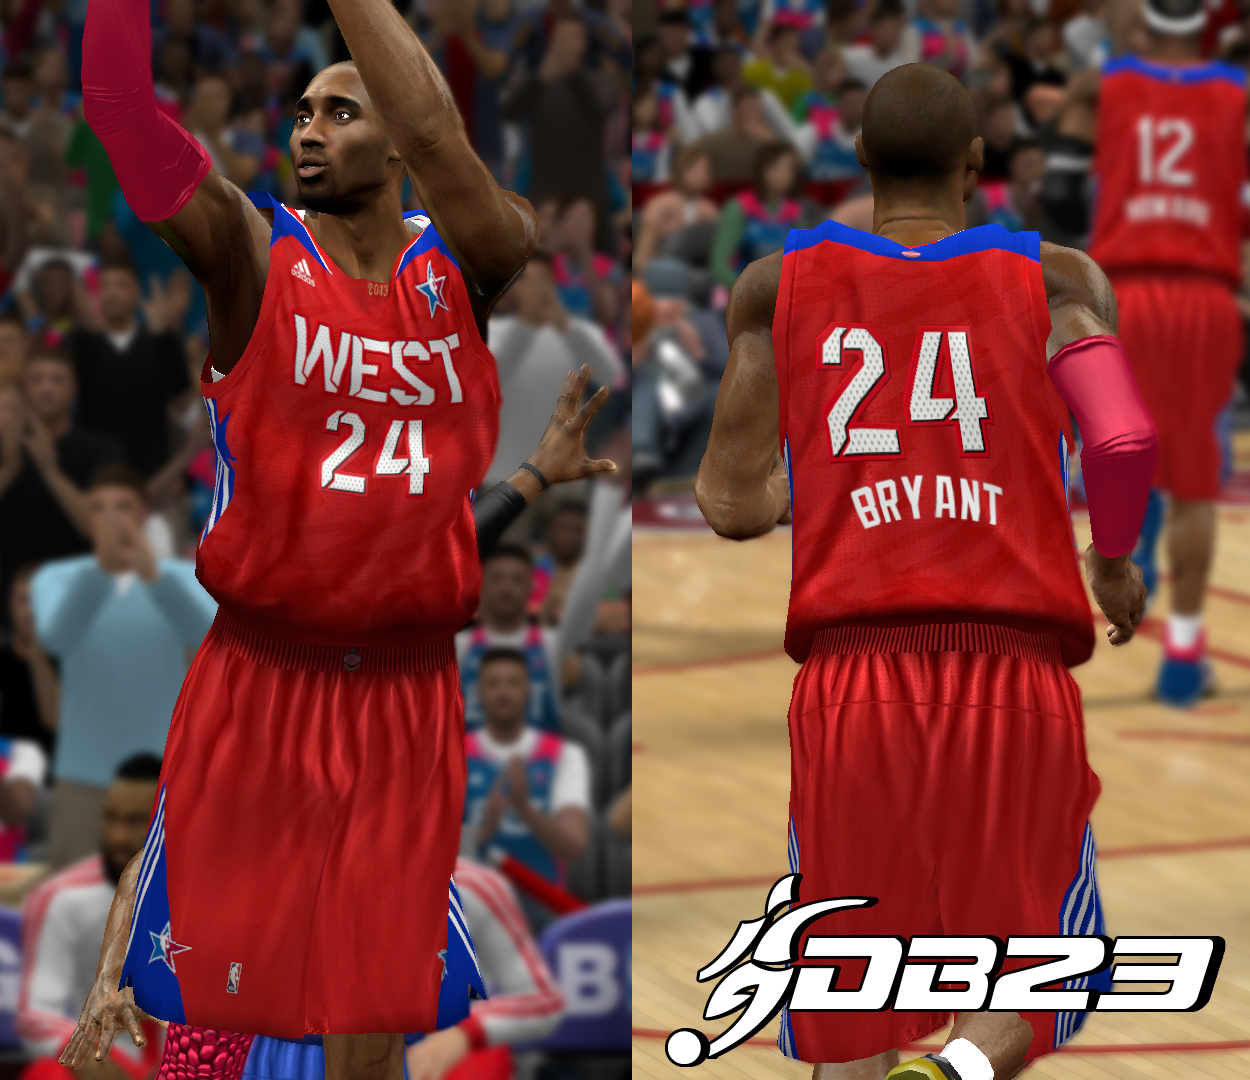 2013 West All-Stars Jersey